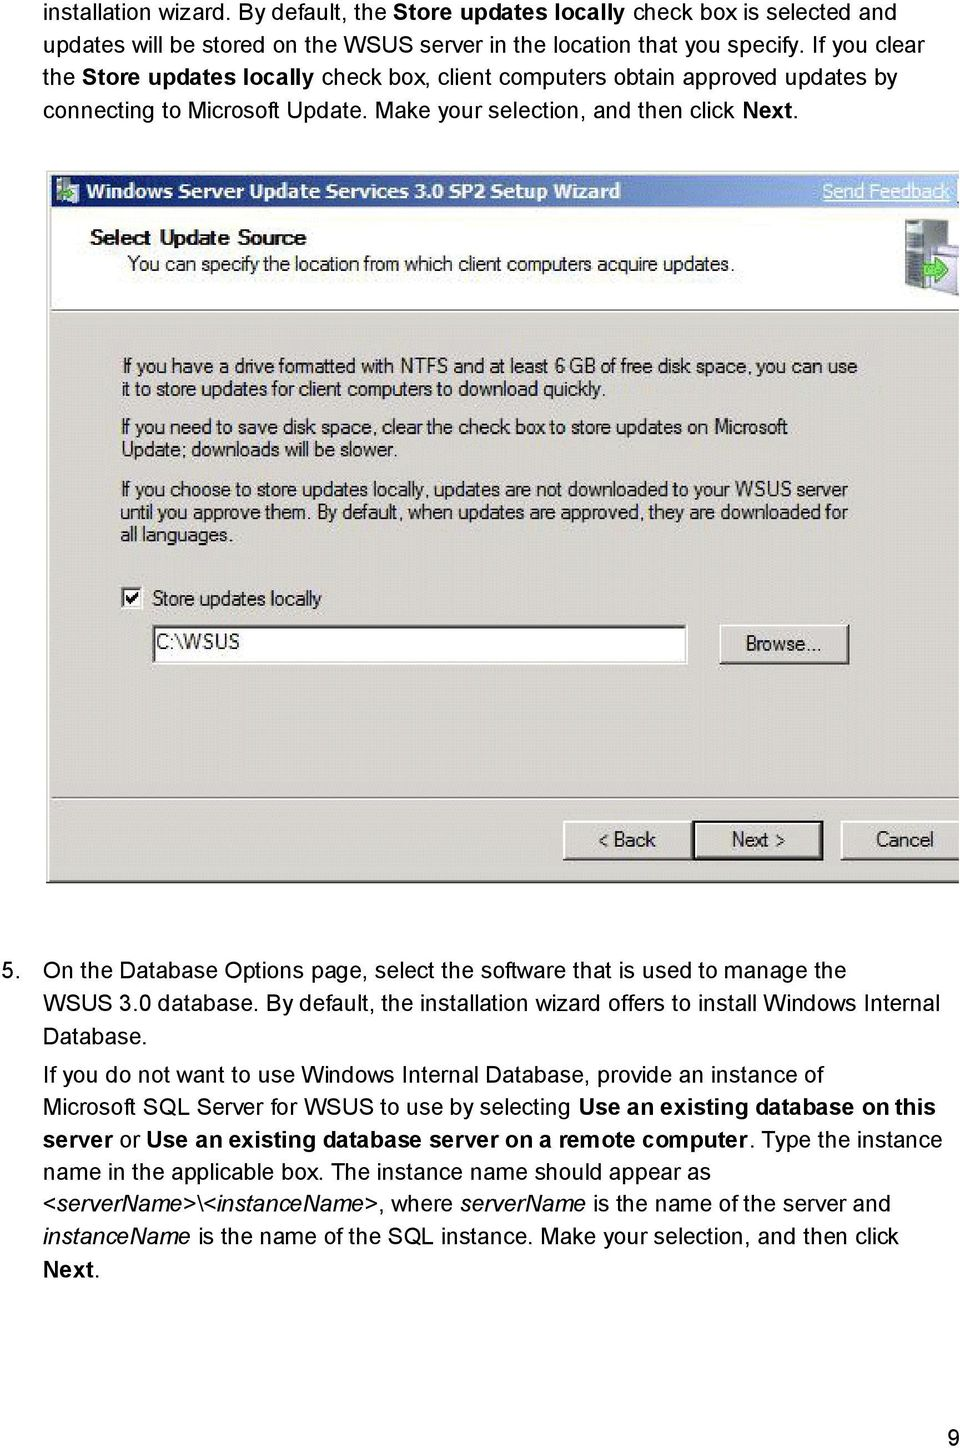 On the Database Options page, select the software that is used to manage the WSUS 3.0 database. By default, the installation wizard offers to install Windows Internal Database.